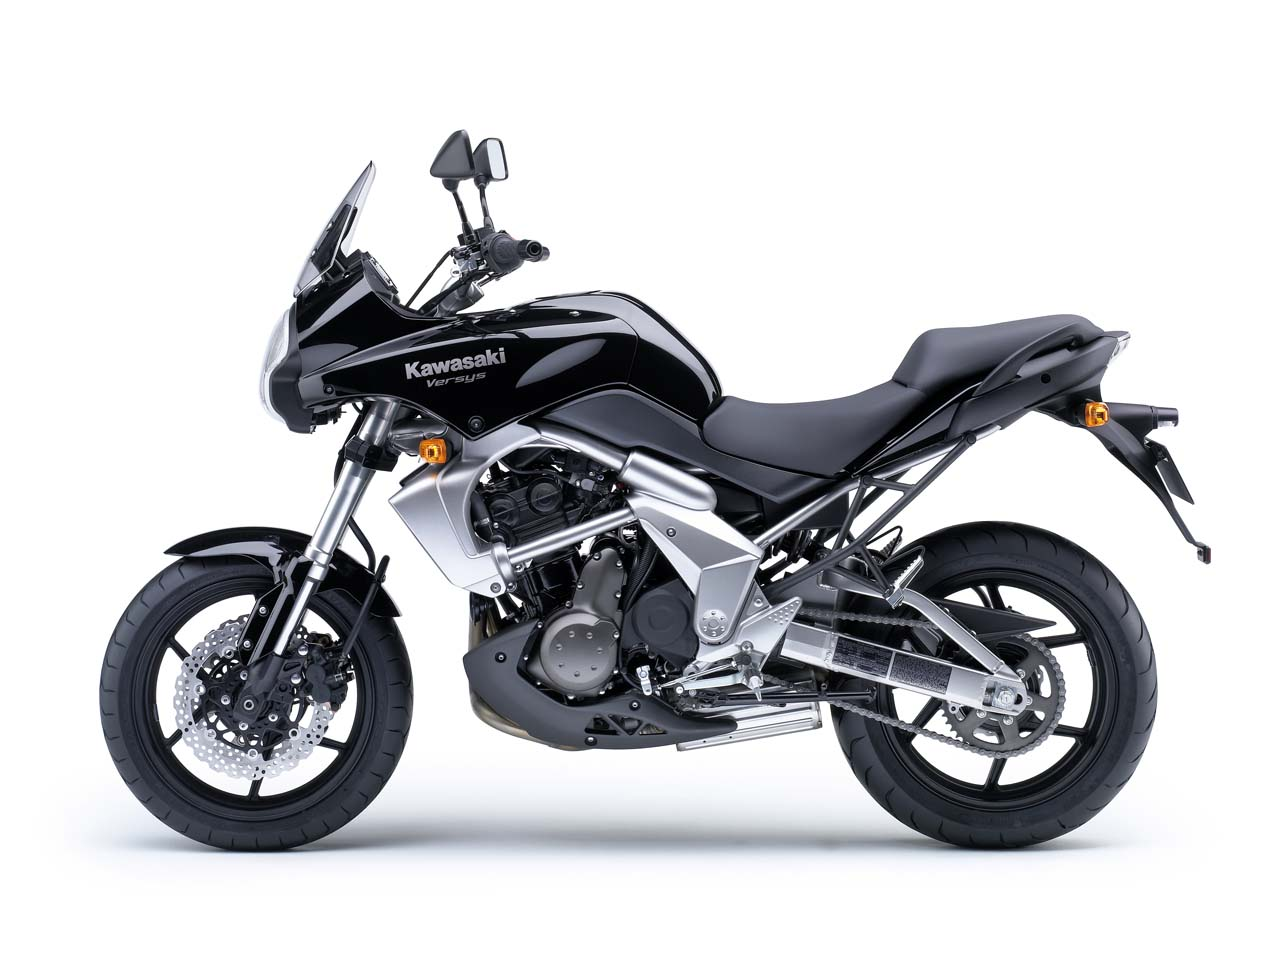 Kawasaki Versys Fuel Consumption